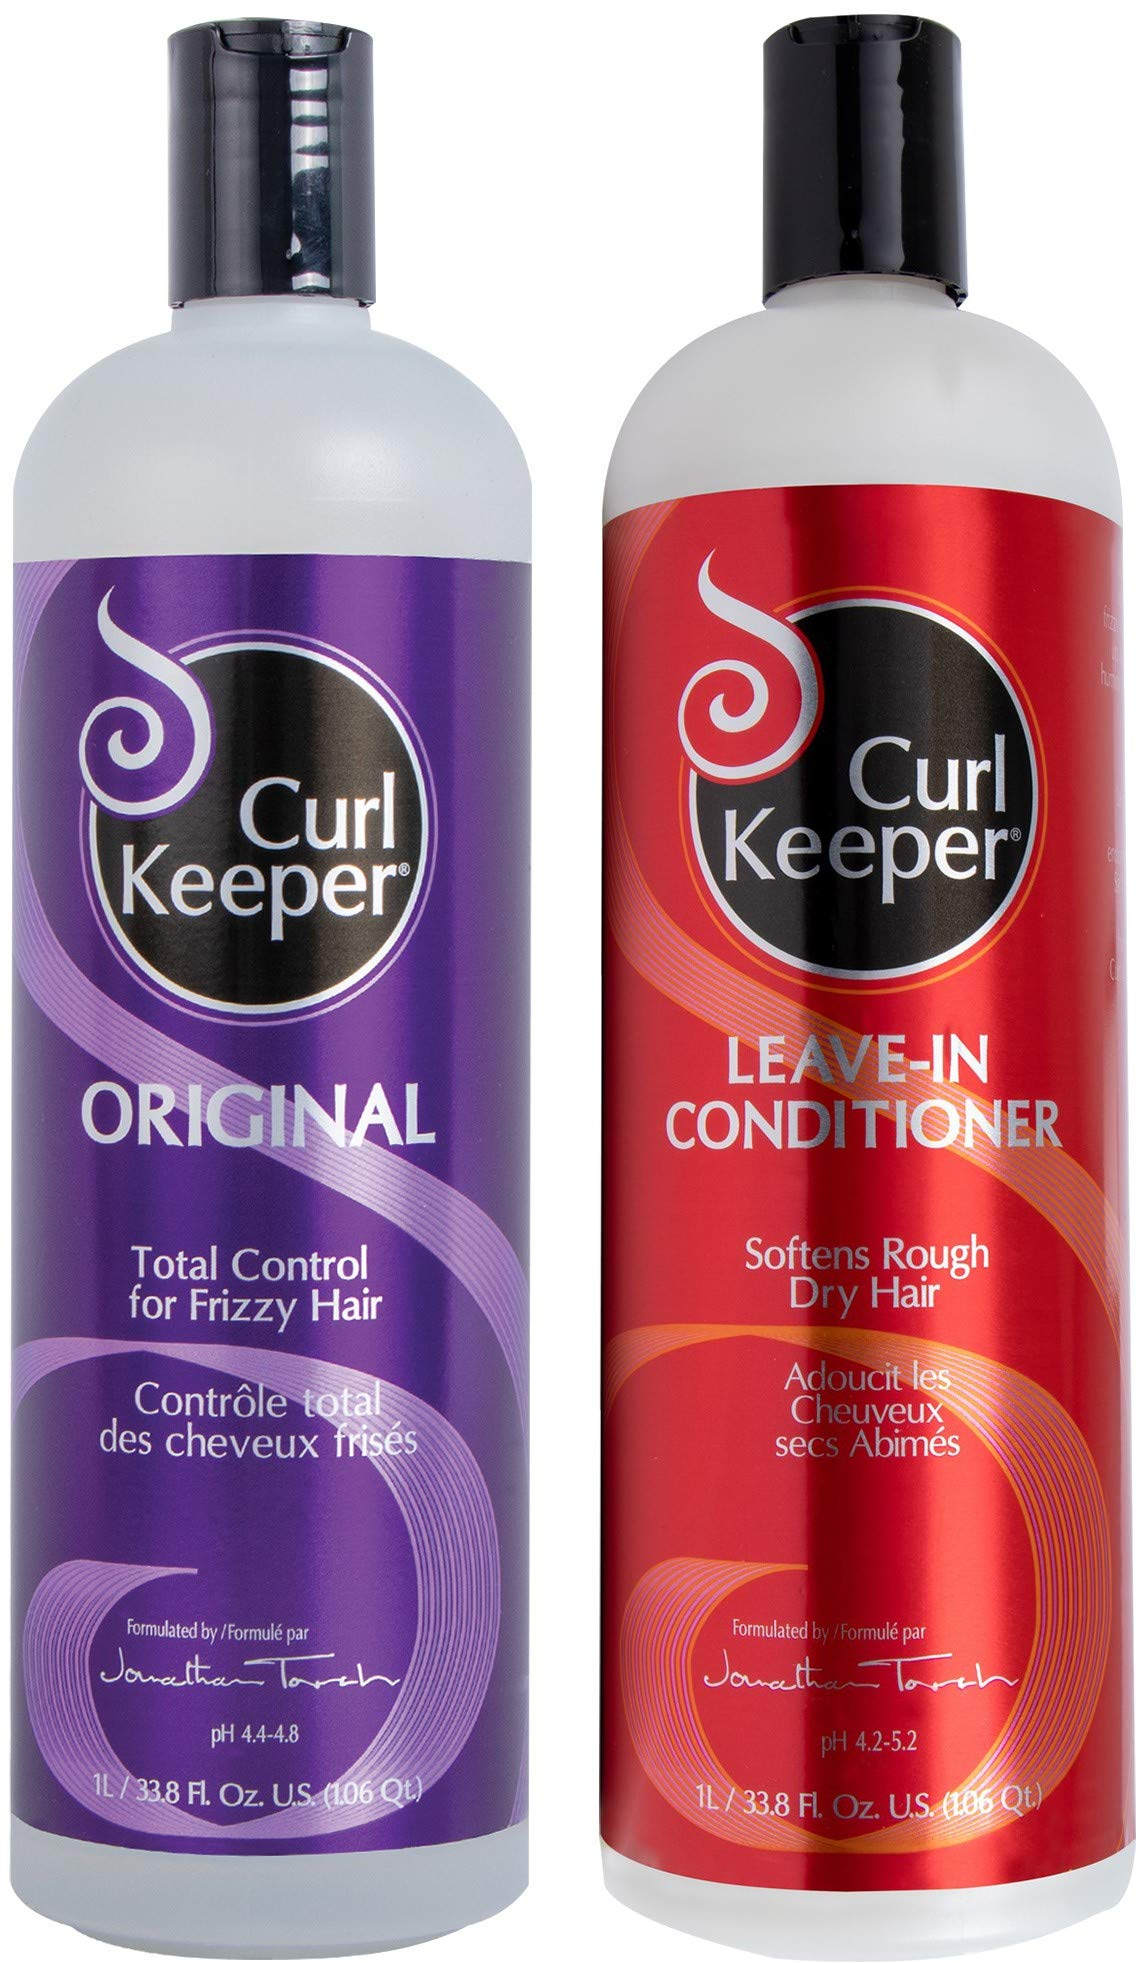 CURLY HAIR SOLUTIONS Curl Keeper Original & Leave-In Conditioner (33.8 Ounces / 1000 Milliliters) by Curly Hair Solutions